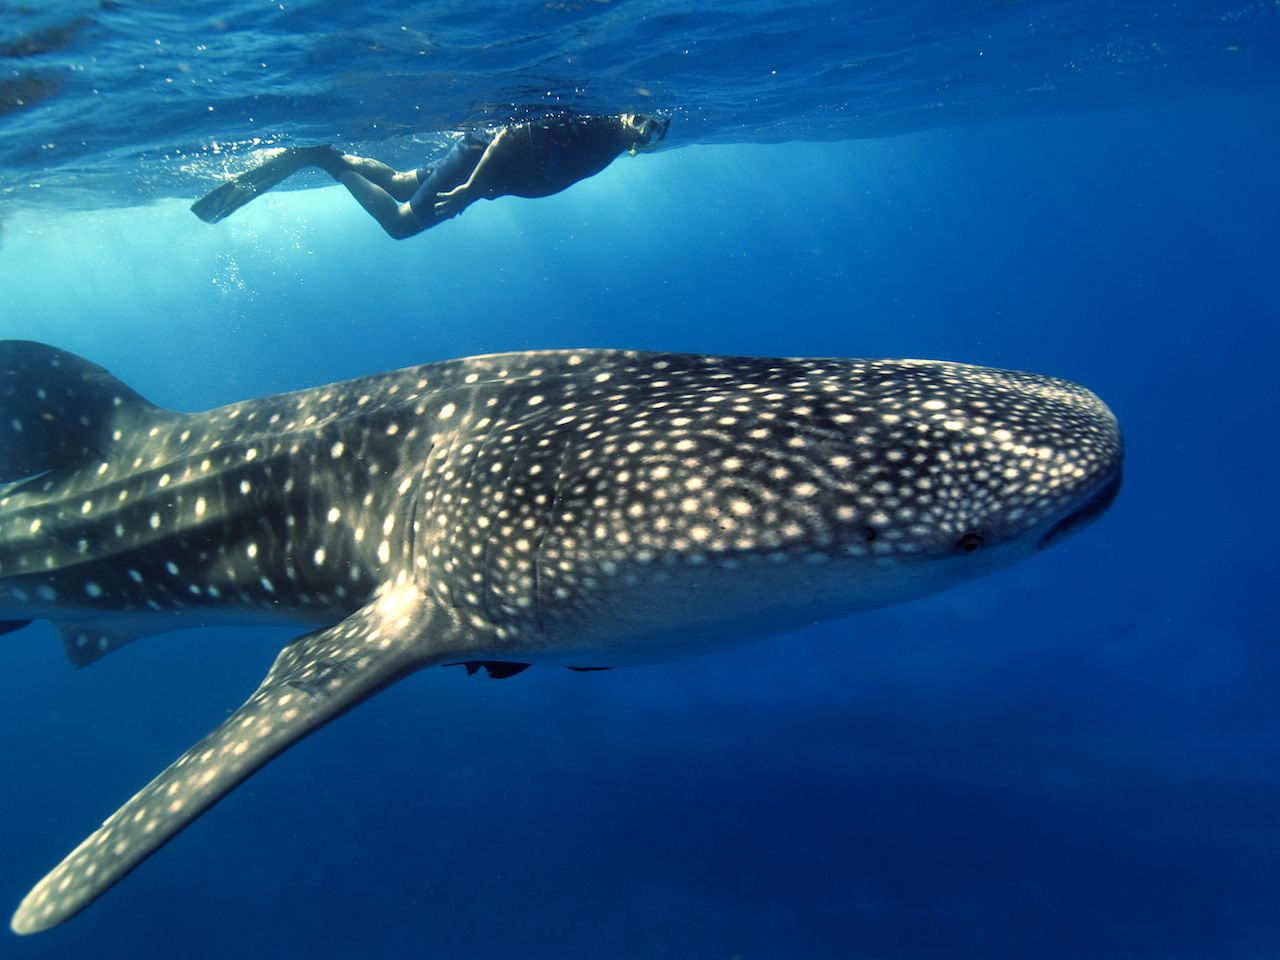 A whale shark swimming just below the surface of the sea with a snorkeler swimming along side